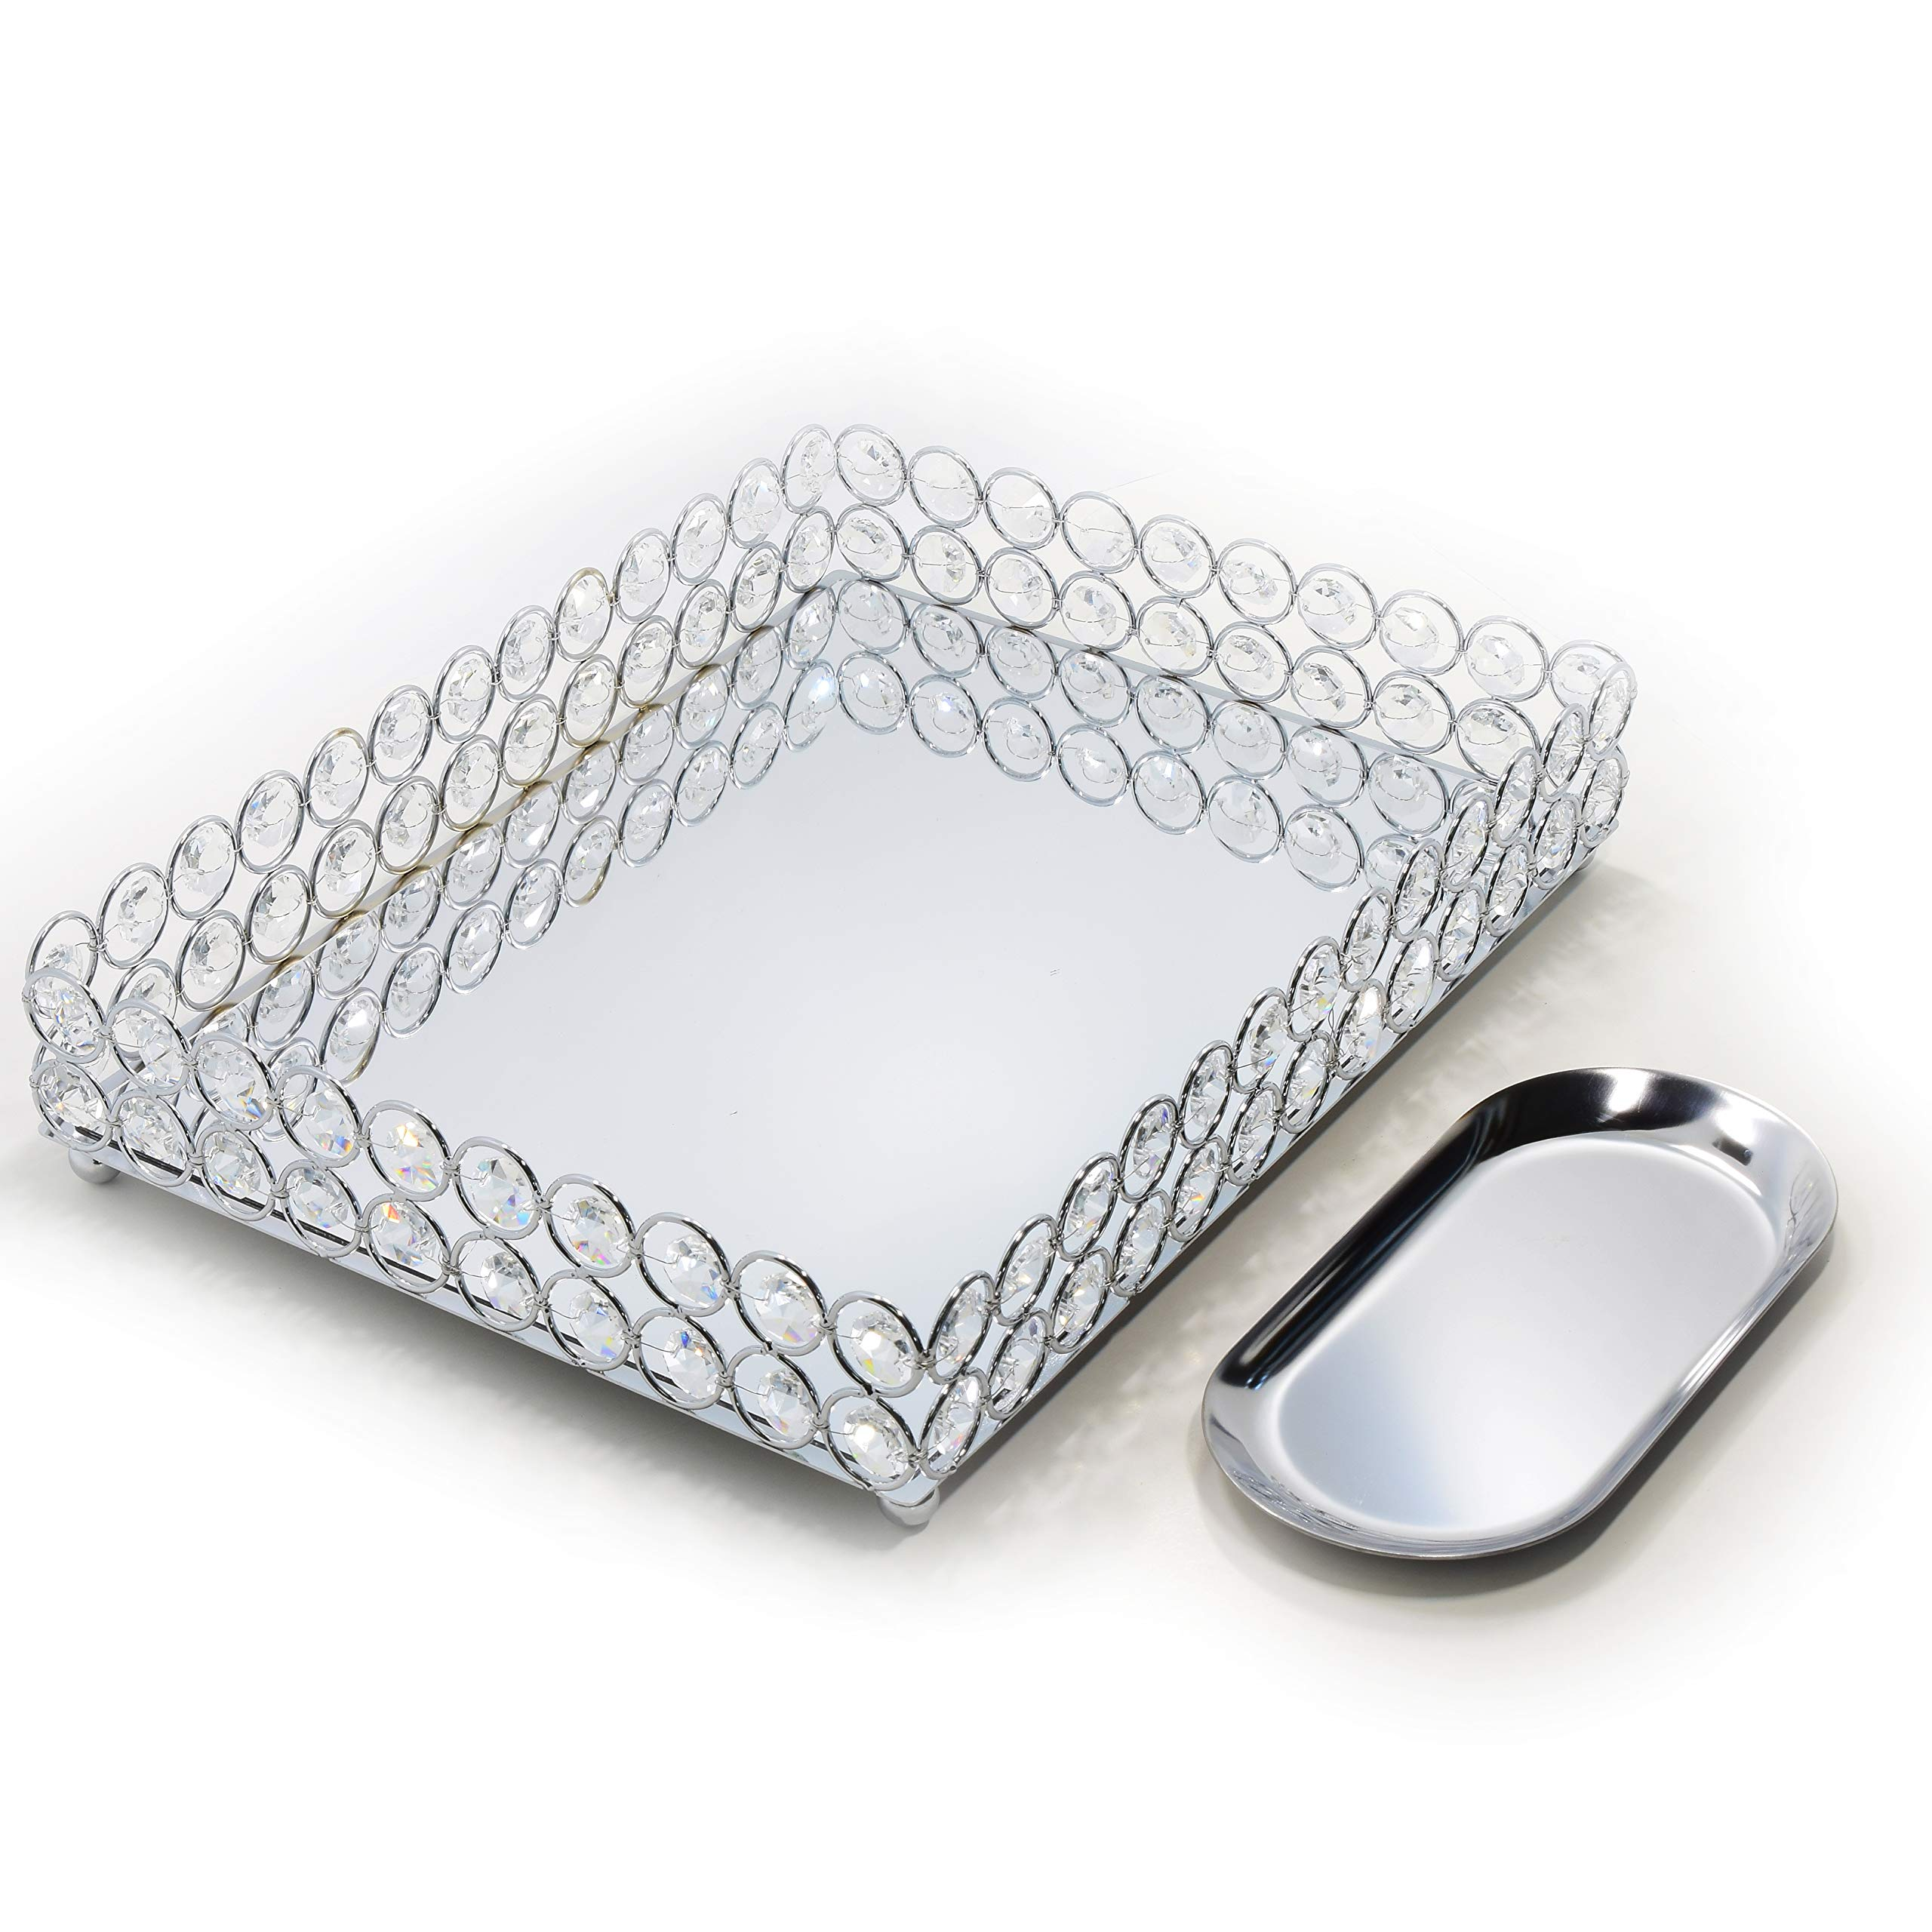 Lindlemann Mirrored Crystal Vanity Tray - Ornate Decorative Tray for Perfume, Jewelry and Makeup (Rectangle 12 x 9 inches, Silver) by Lindlemann